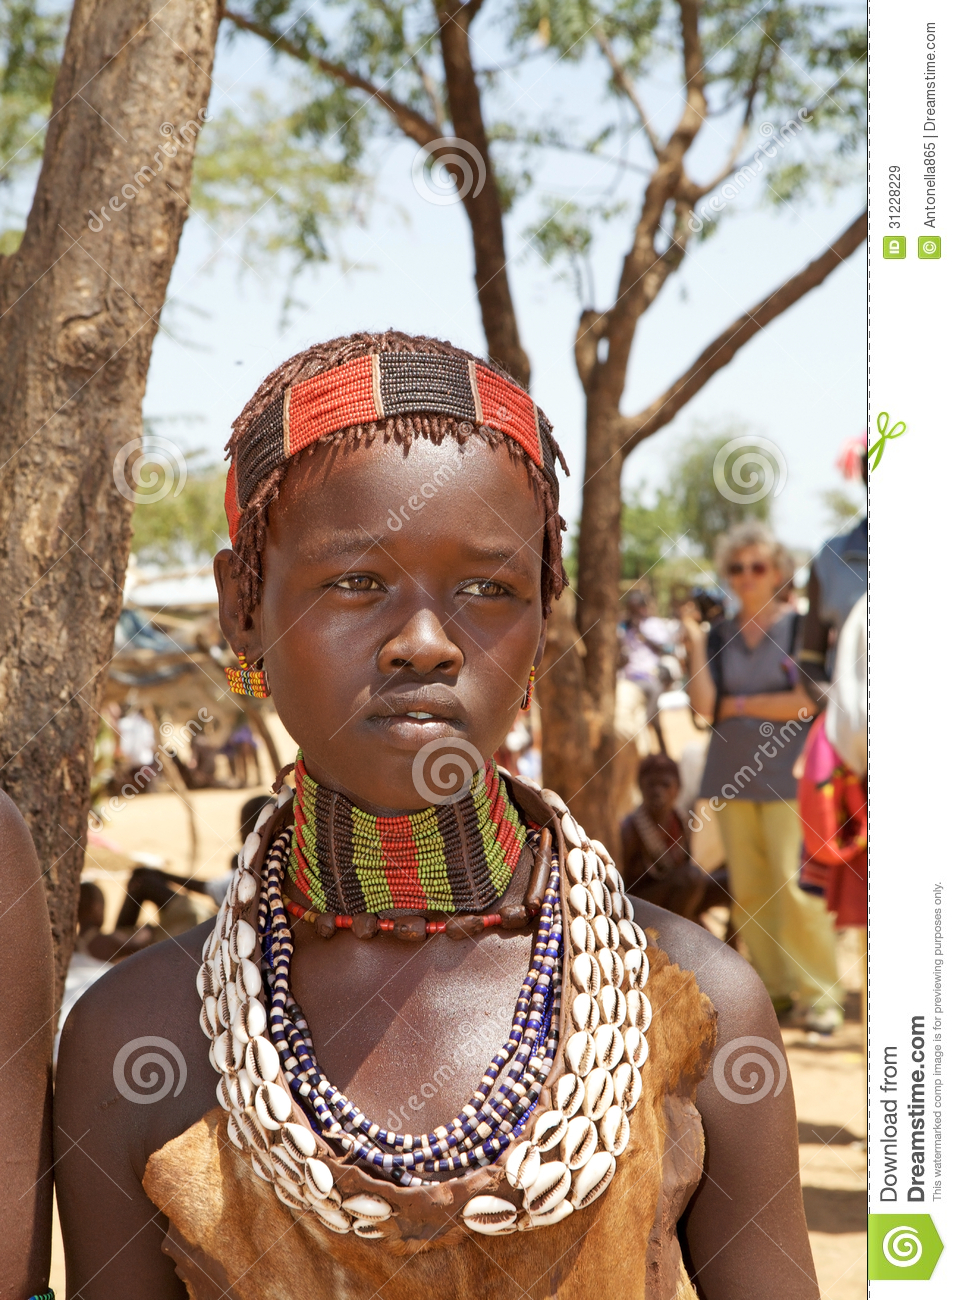 African woman of the Hamer ethnic group with tribal clothes and hair